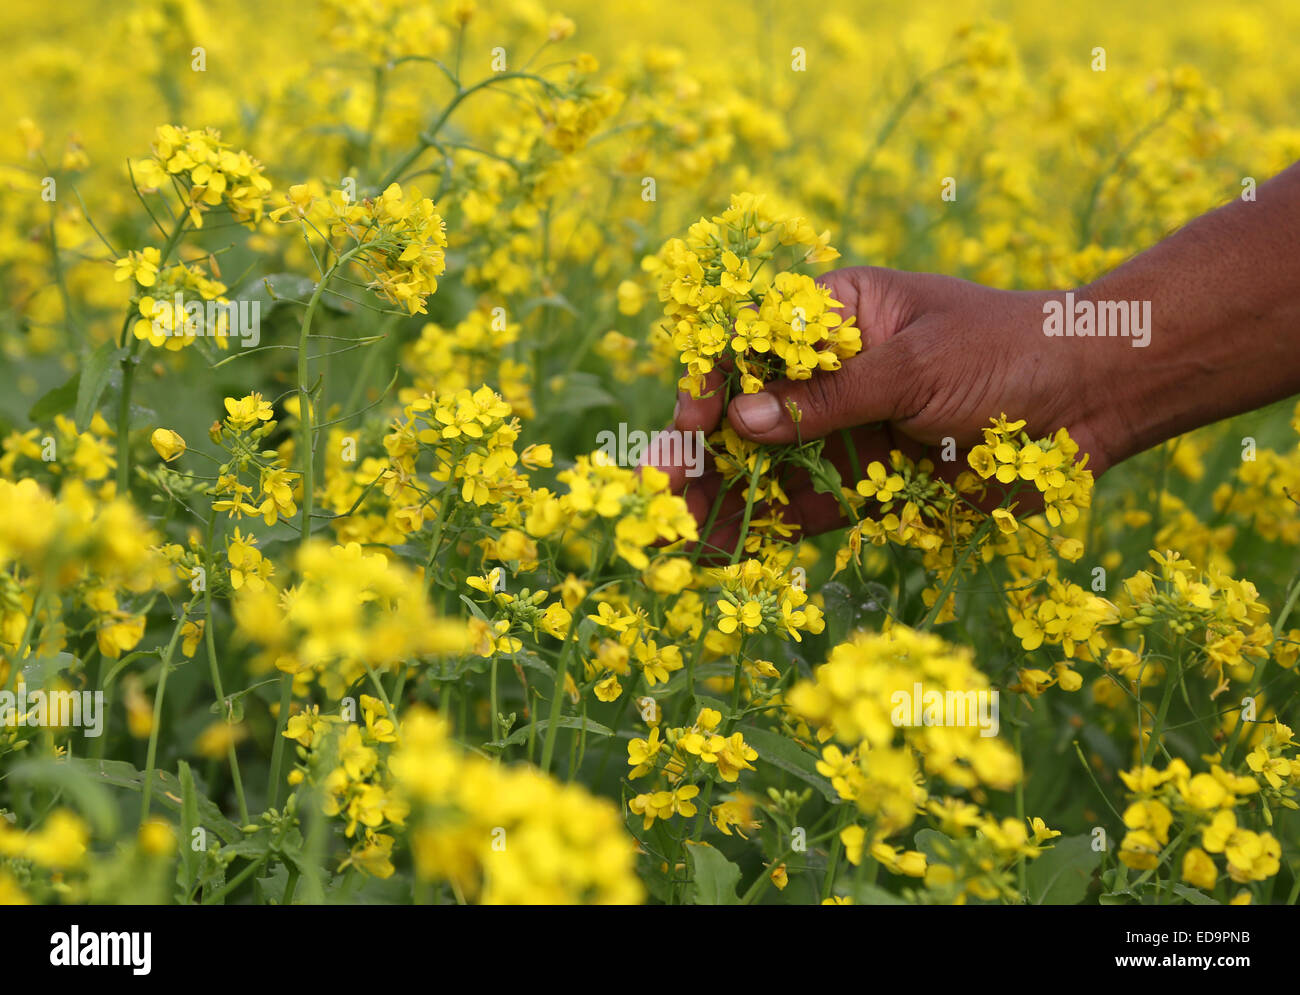 Hand holding yellow flowers in a mustard field stock photo 77047415 hand holding yellow flowers in a mustard field mightylinksfo